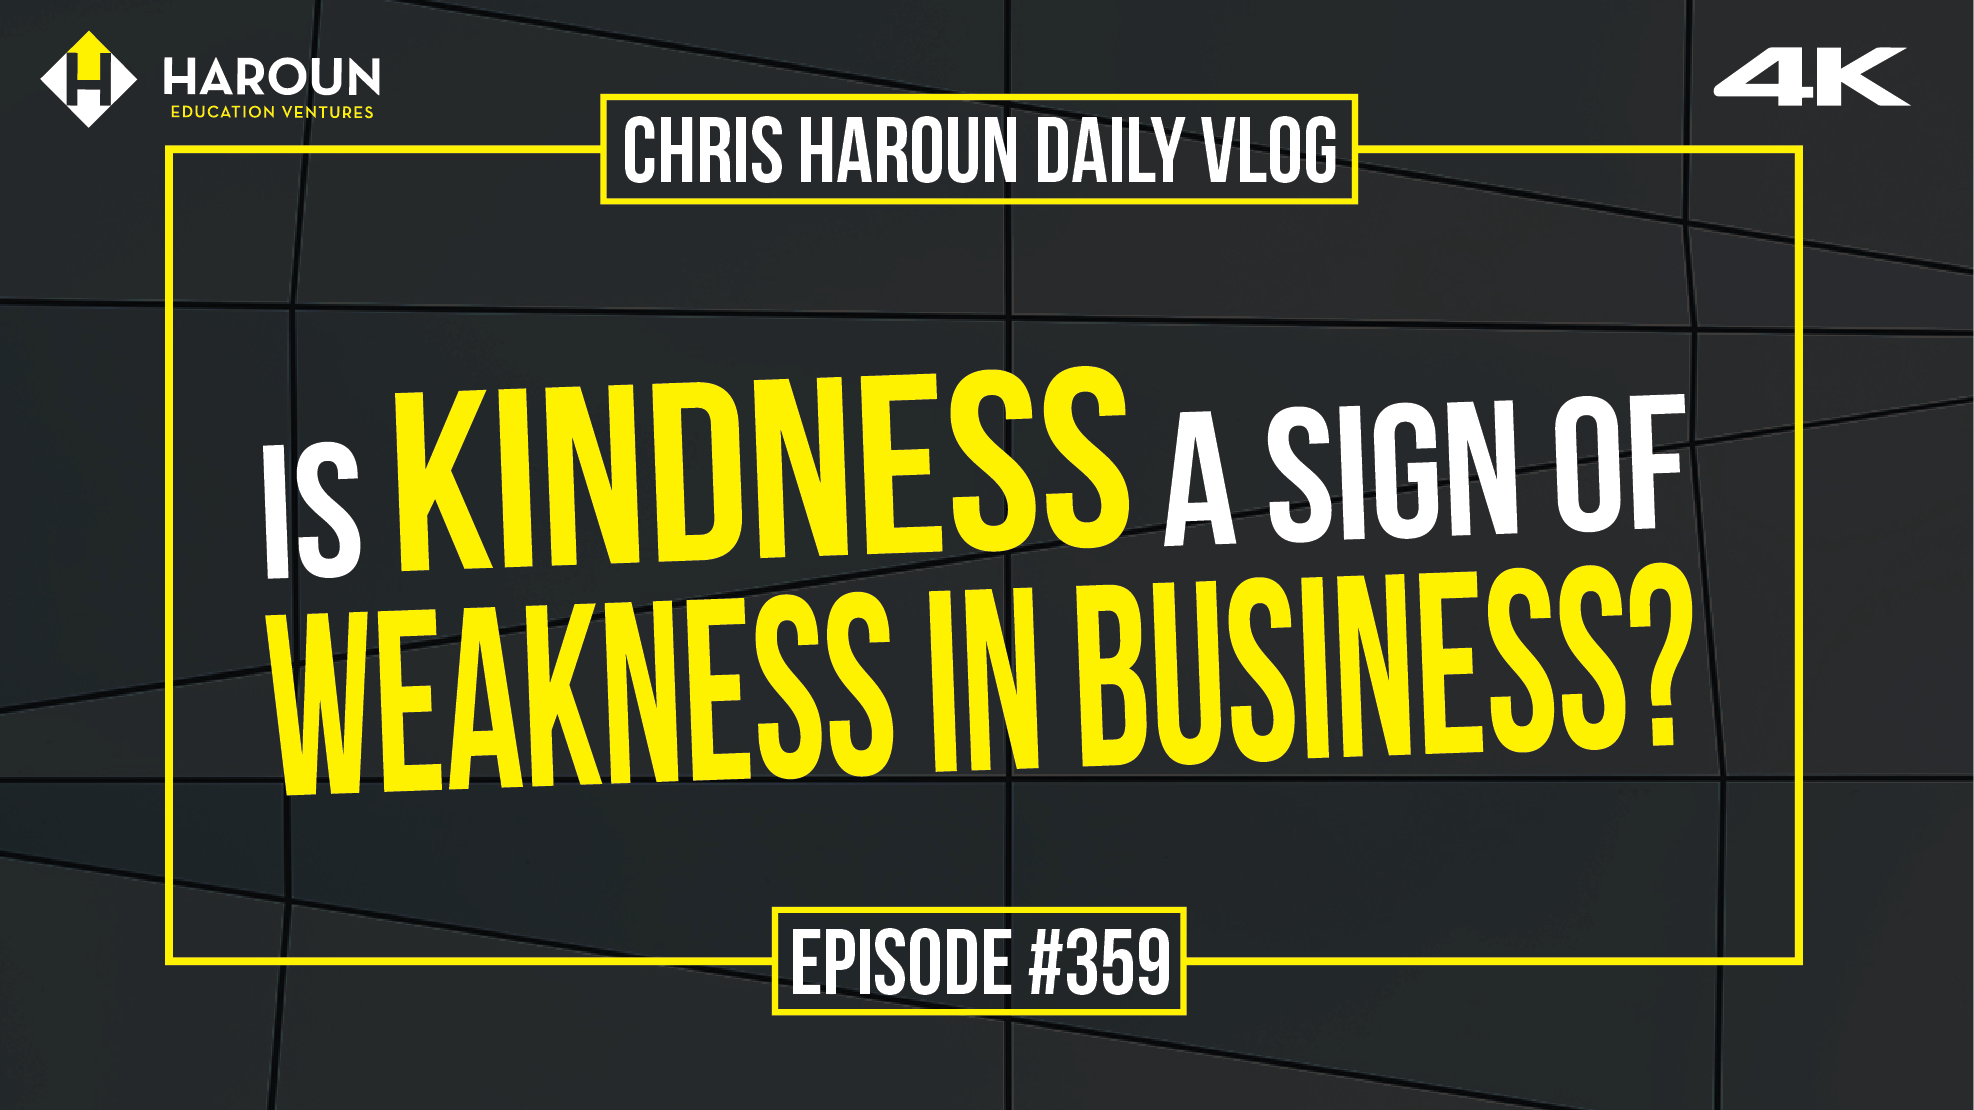 VLOG_359_7_25_2019_Is Kindness a Sign of Weakness in Business?.png